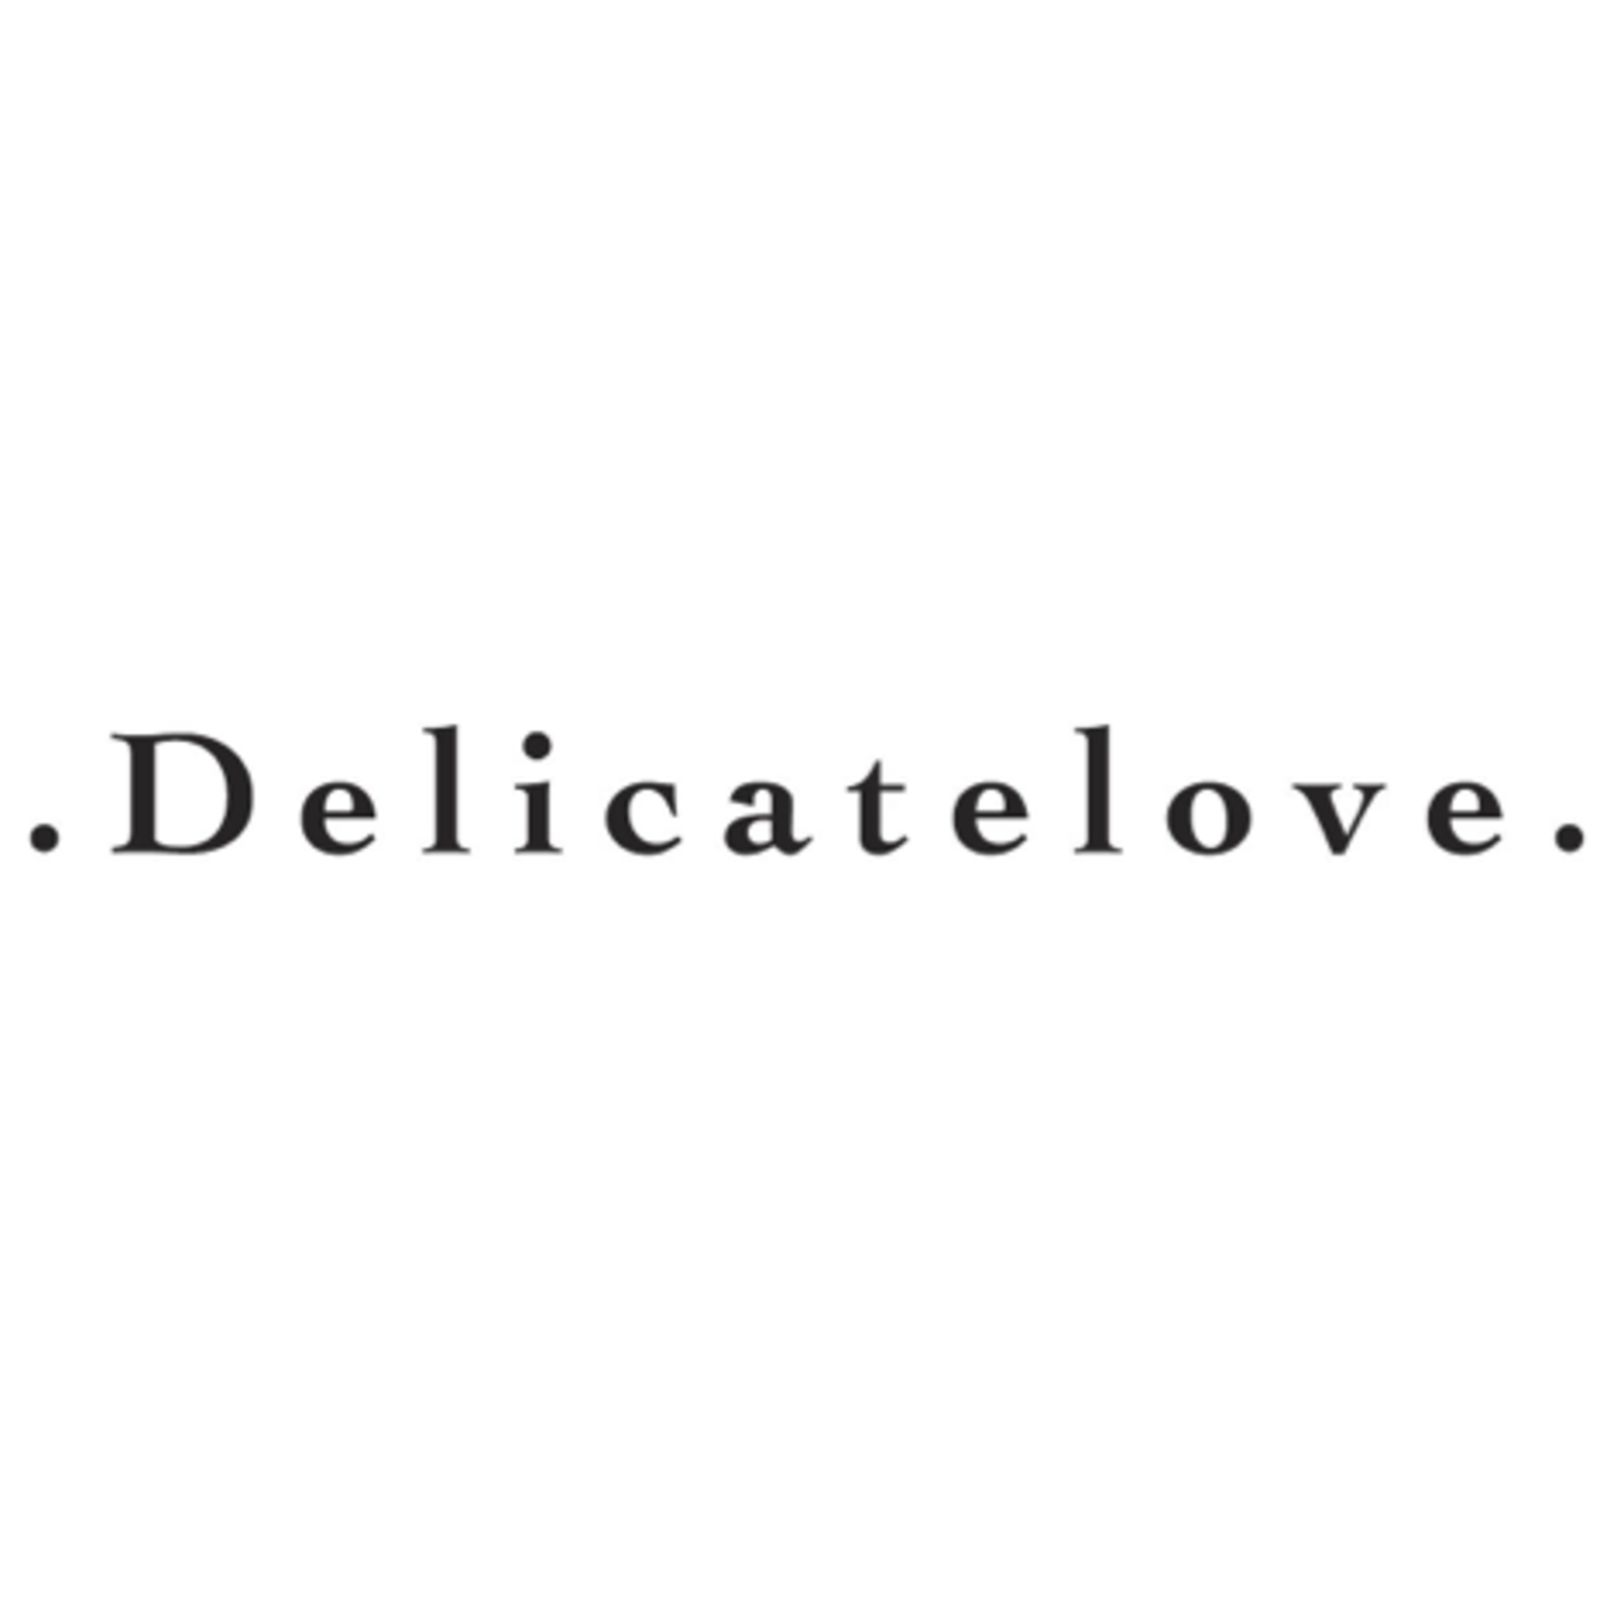 Delicatelove